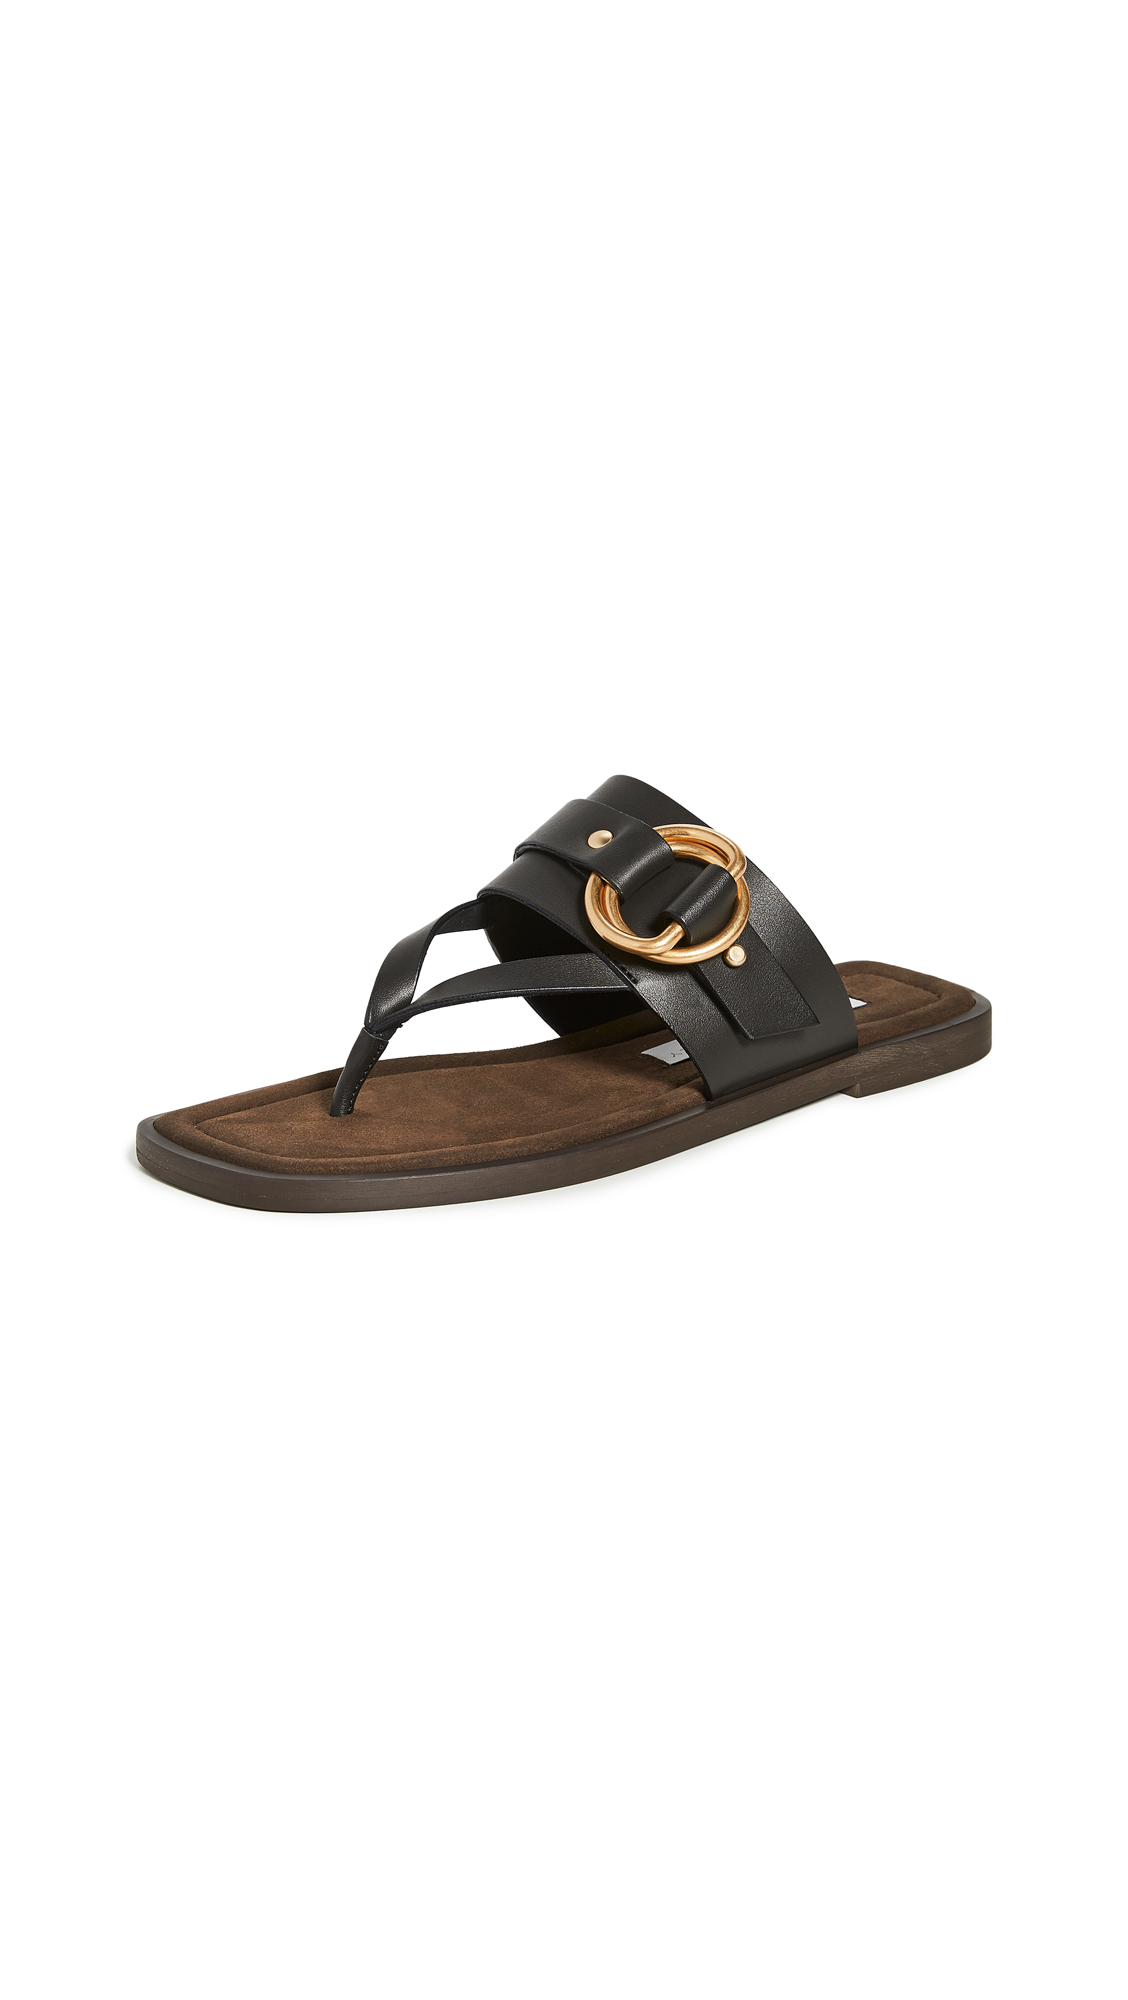 Buy Stella McCartney Thong Sandals online, shop Stella McCartney